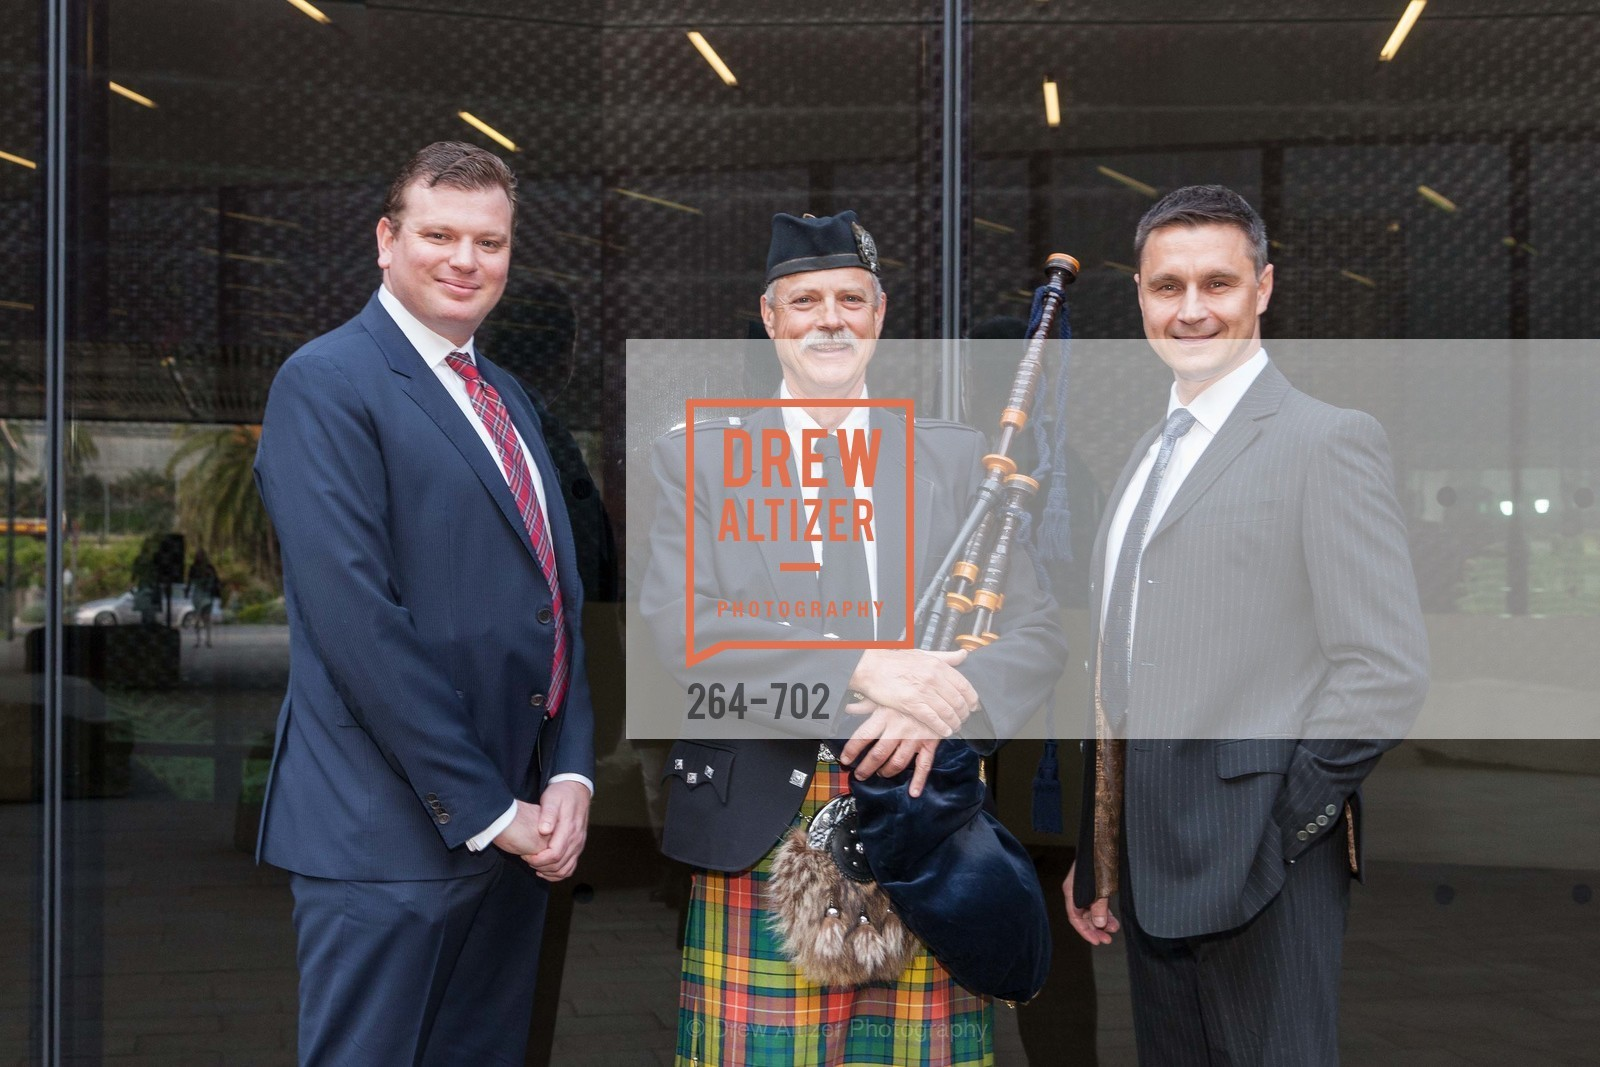 Josh Reynolds, Vadim Nebuchin, ARTPOINT:  Masterpieces from the National Galleries of Scotland and Scotch Tastings, US, May 7th, 2015,Drew Altizer, Drew Altizer Photography, full-service agency, private events, San Francisco photographer, photographer california